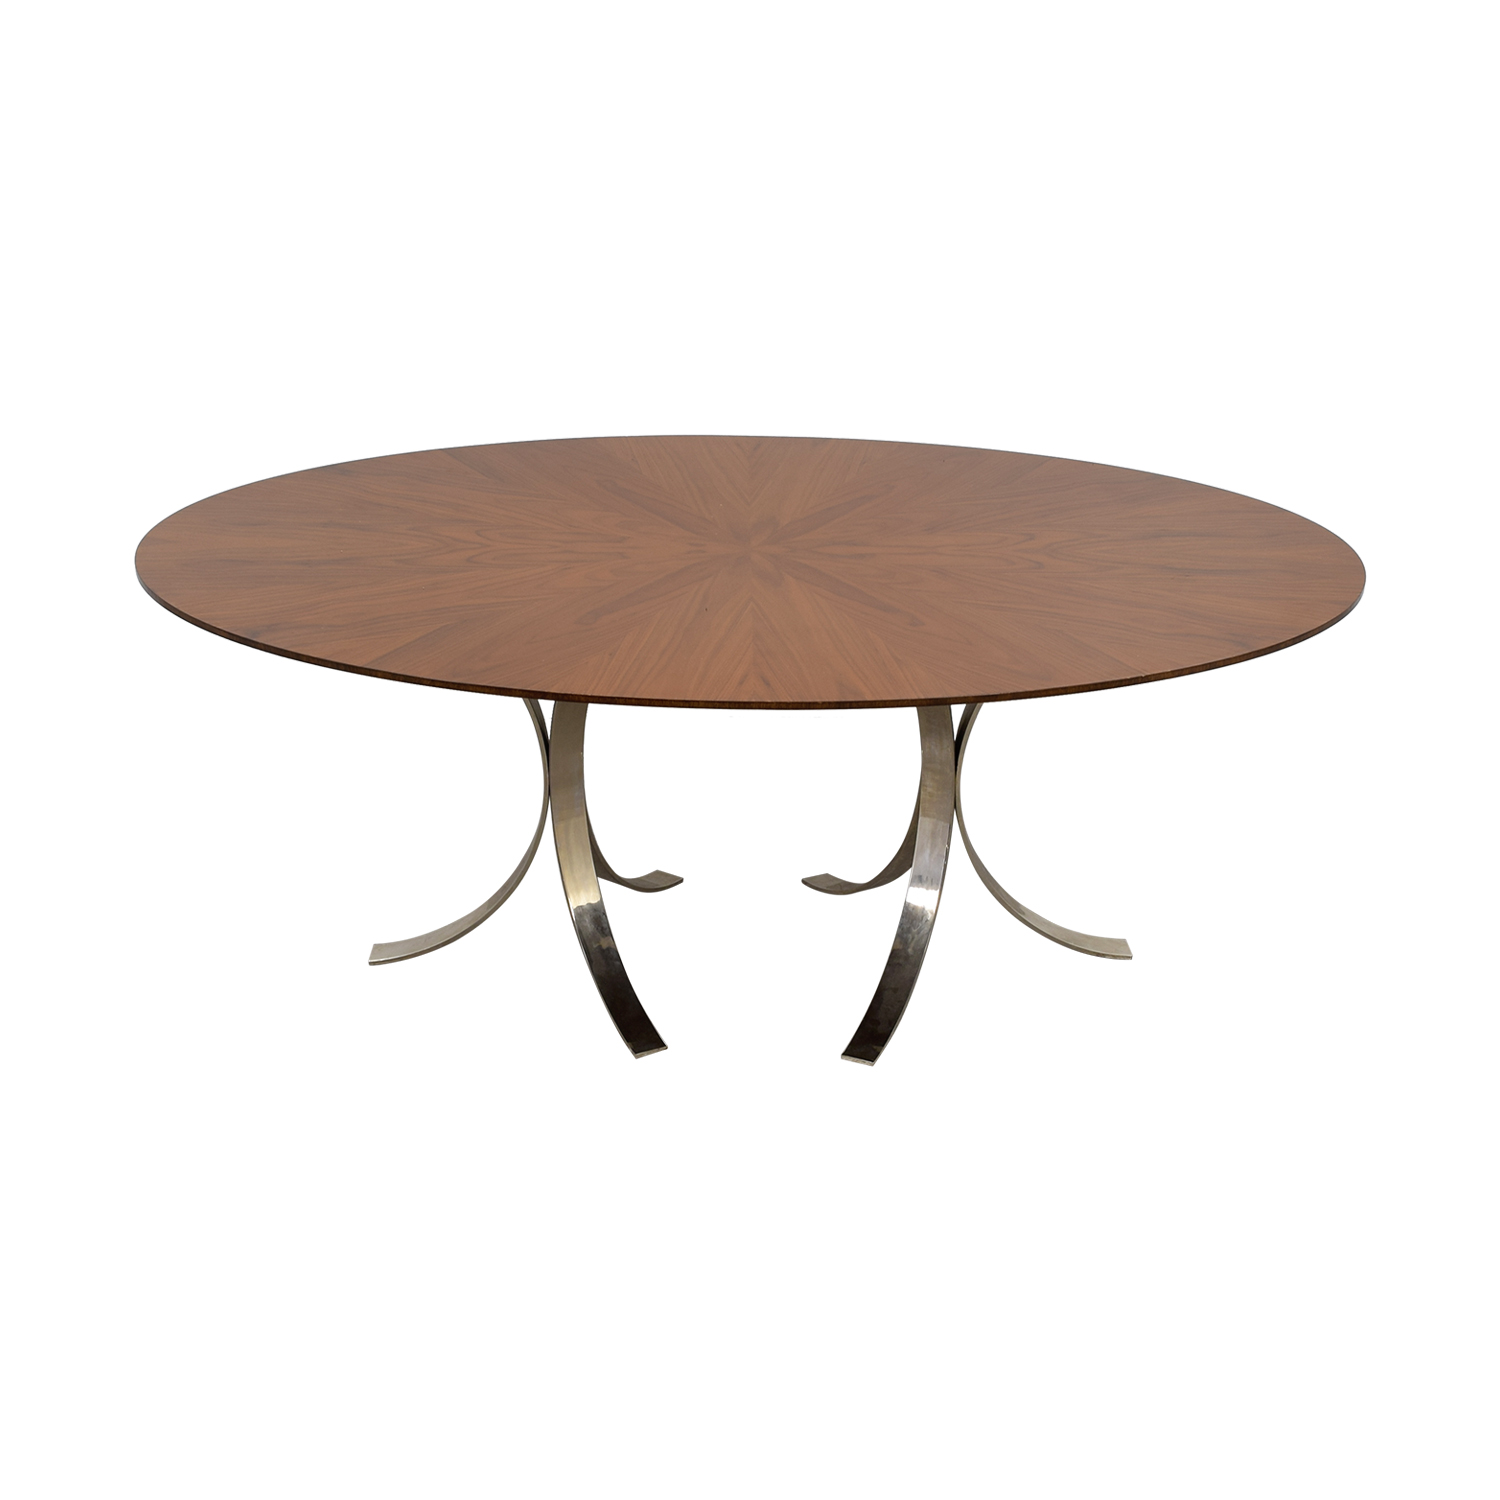 Jonathan Adler Jonathan Adler Oval Wood Table price